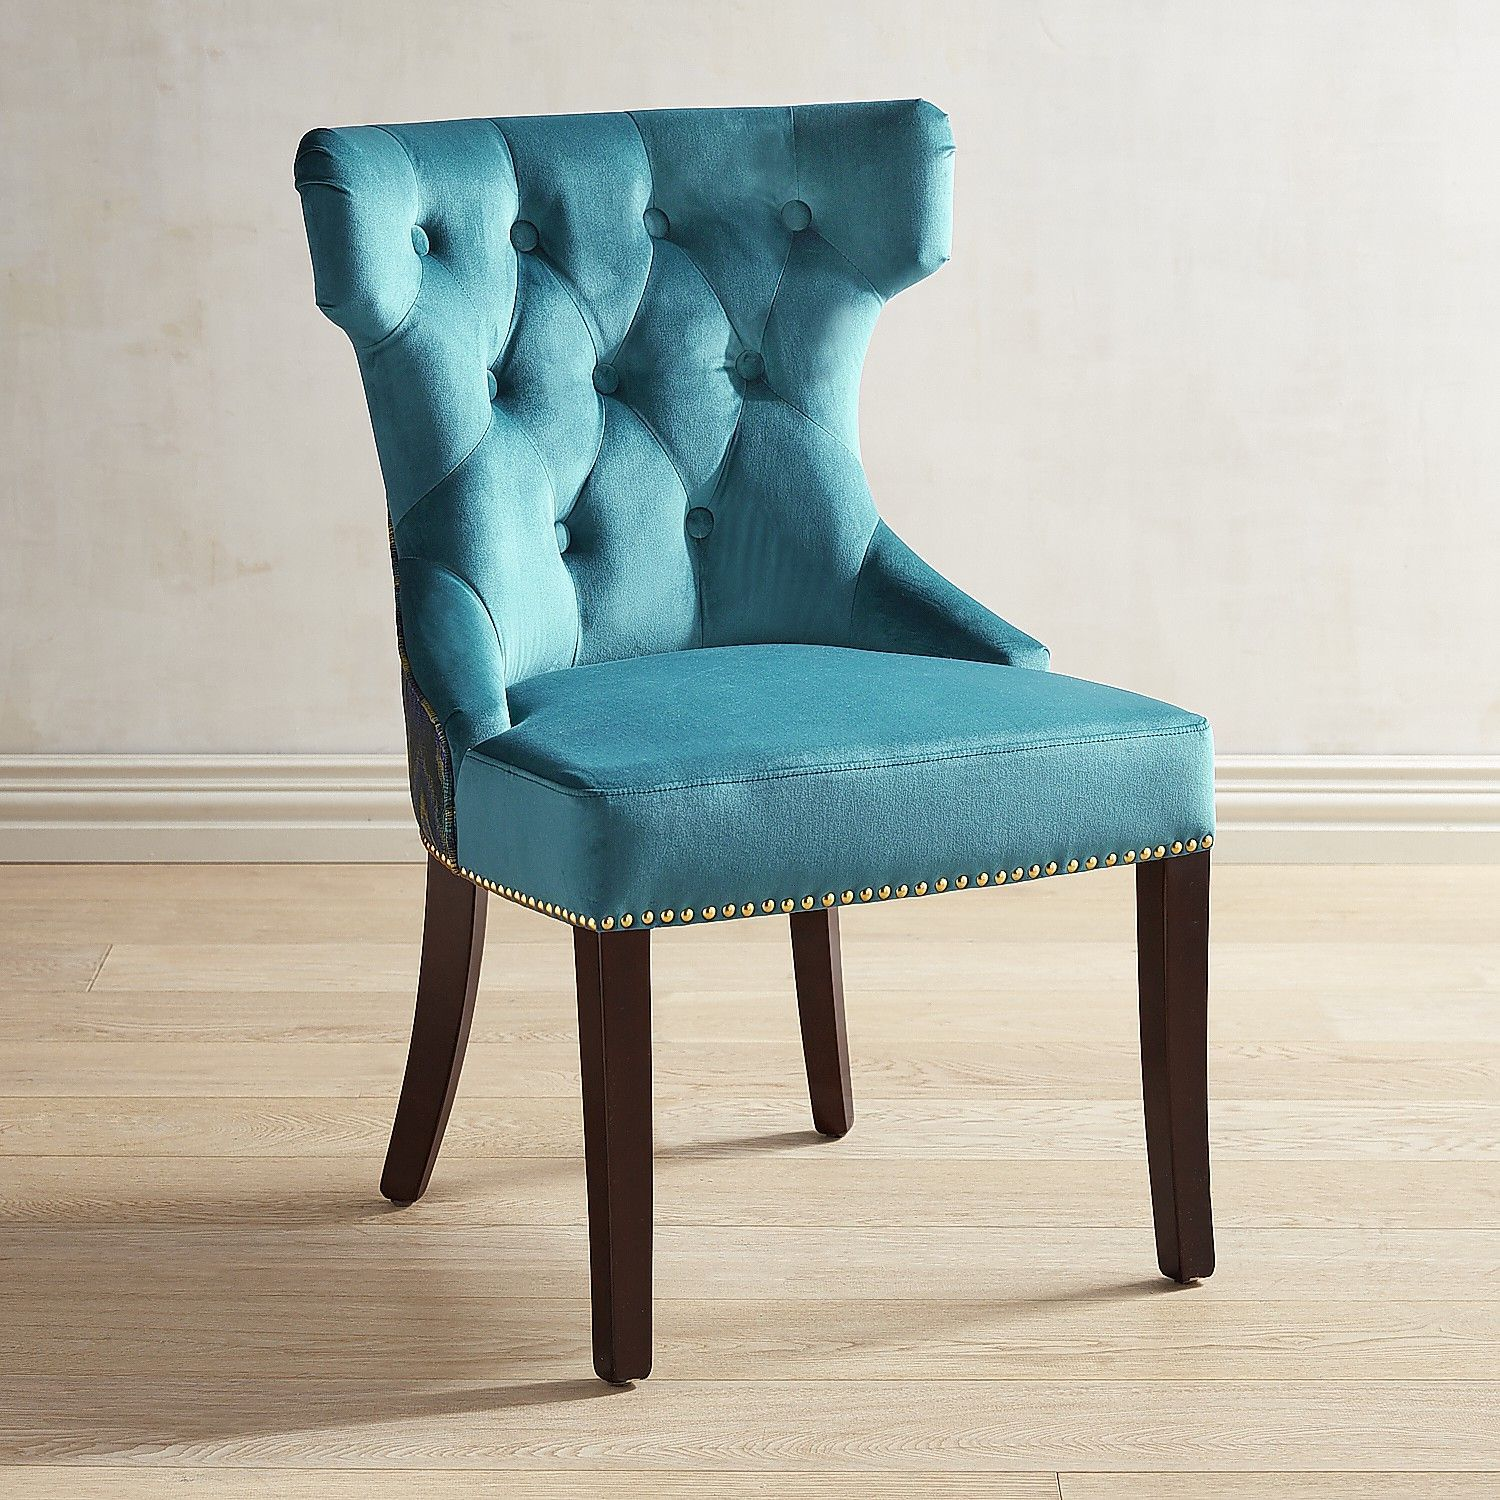 Teal Kitchen Chairs Hourglass Plume Teal Dining Chair With Espresso Wood